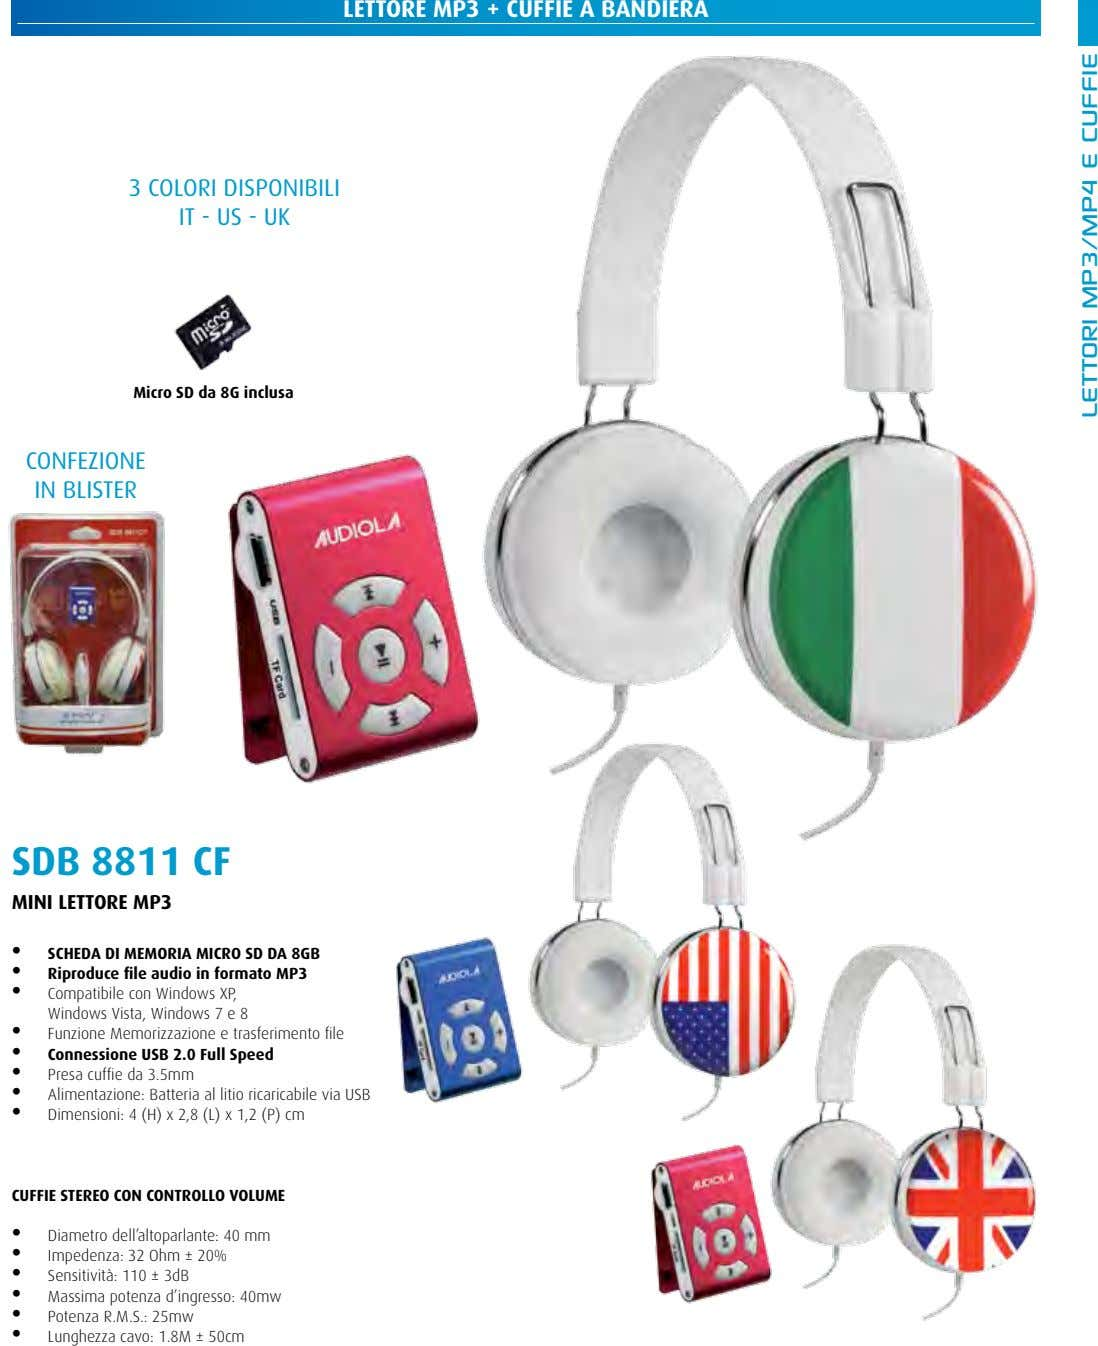 LETTORE MP3 + CUFFIE A BANDIERA 3 colori disponibili iT - Us - UK Micro